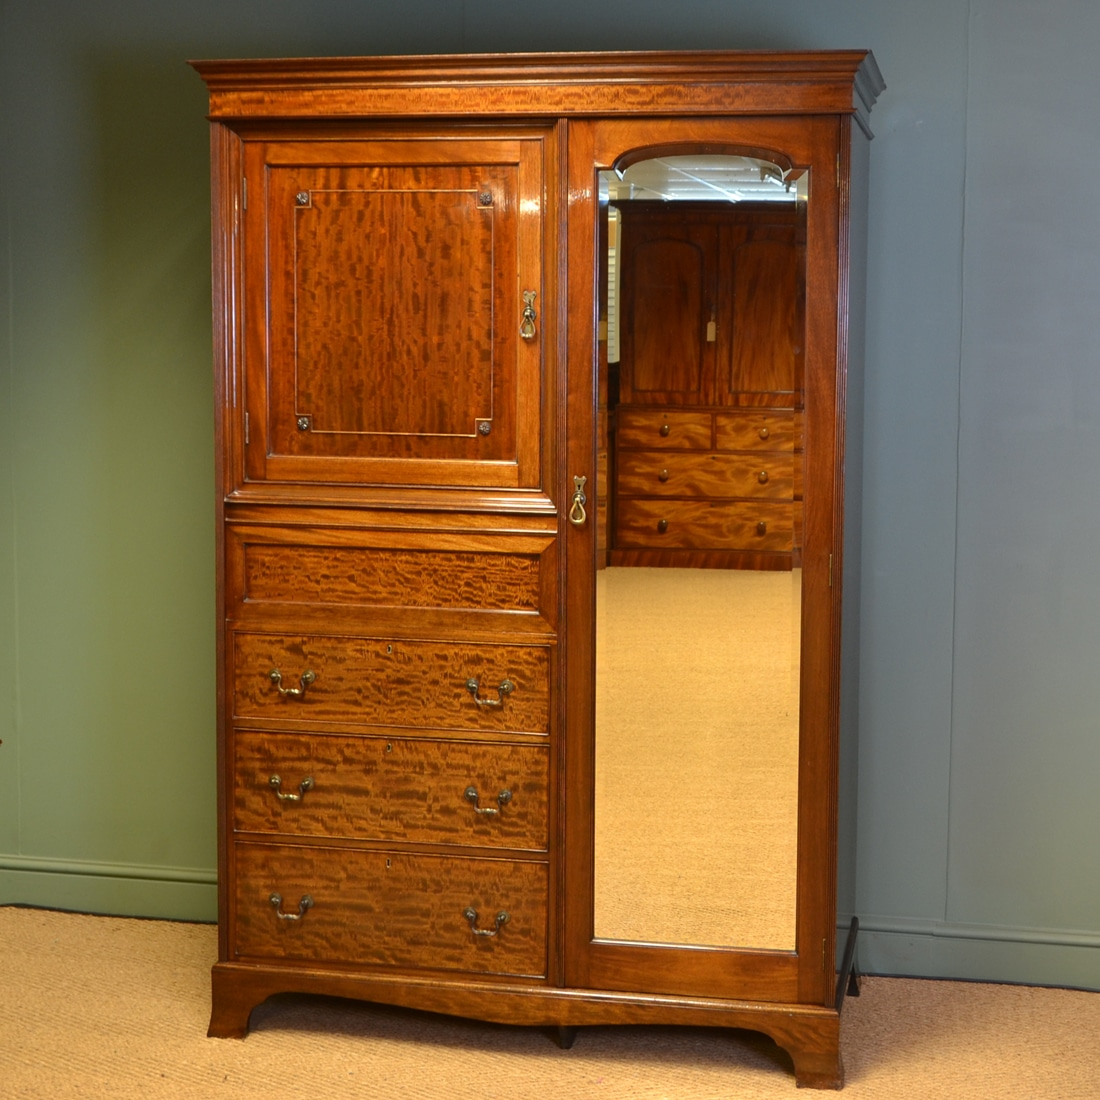 Beautiful Antique Triple Wardrobe With Bevelled Mirror Edwardian (1901-1910) Antique Furniture